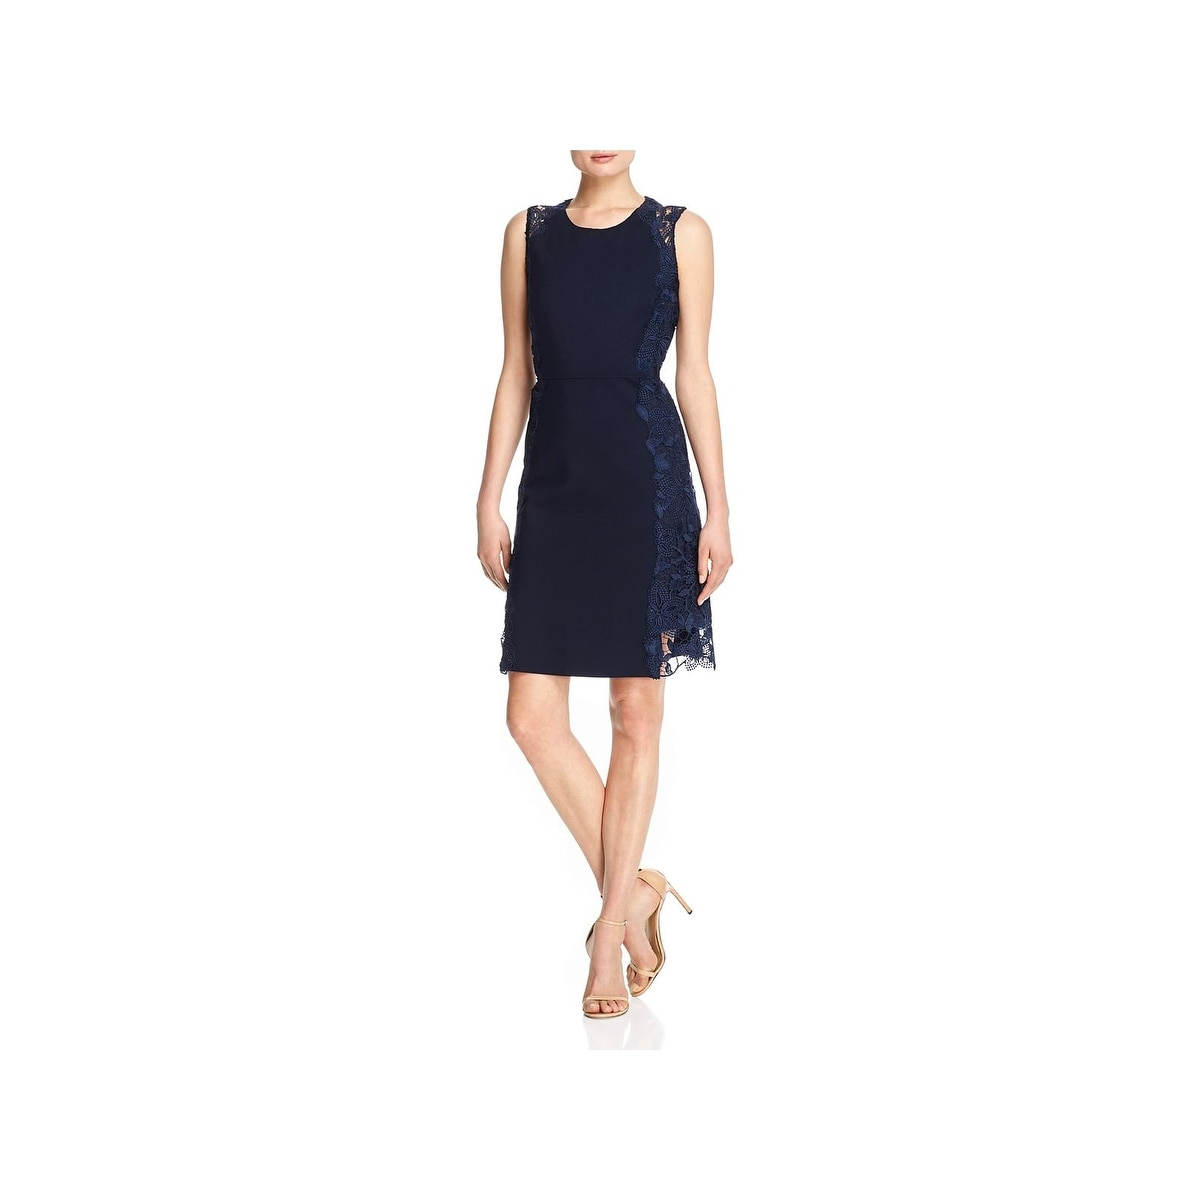 b79cd1ee69d49 Elie Tahari Dresses | Find Great Women's Clothing Deals Shopping at  Overstock